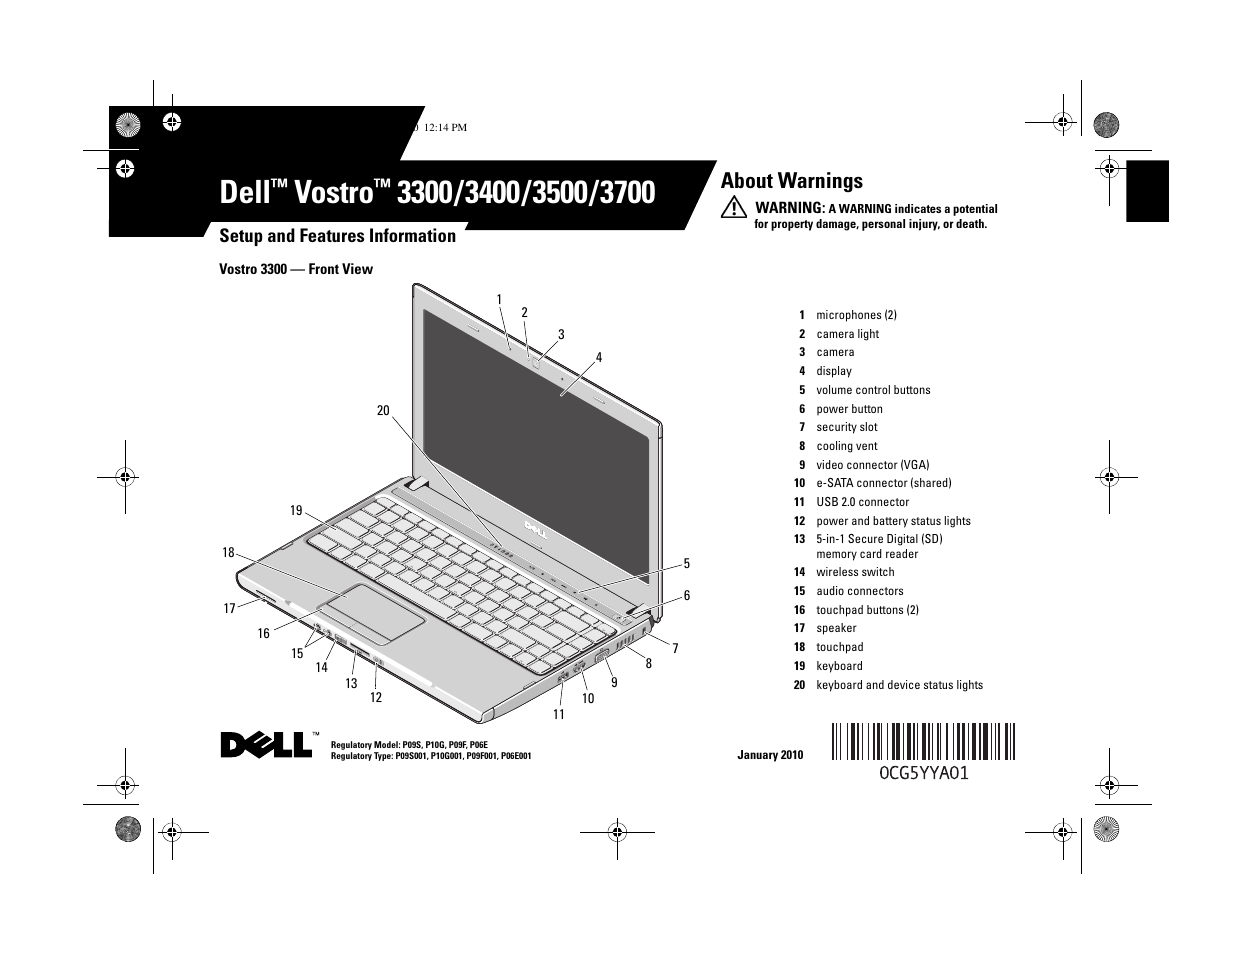 dell vostro 3700 early 2010 user manual 12 pages rh manualsdir com Vostro 3500 Motherboard Vostro 3500 Drivers